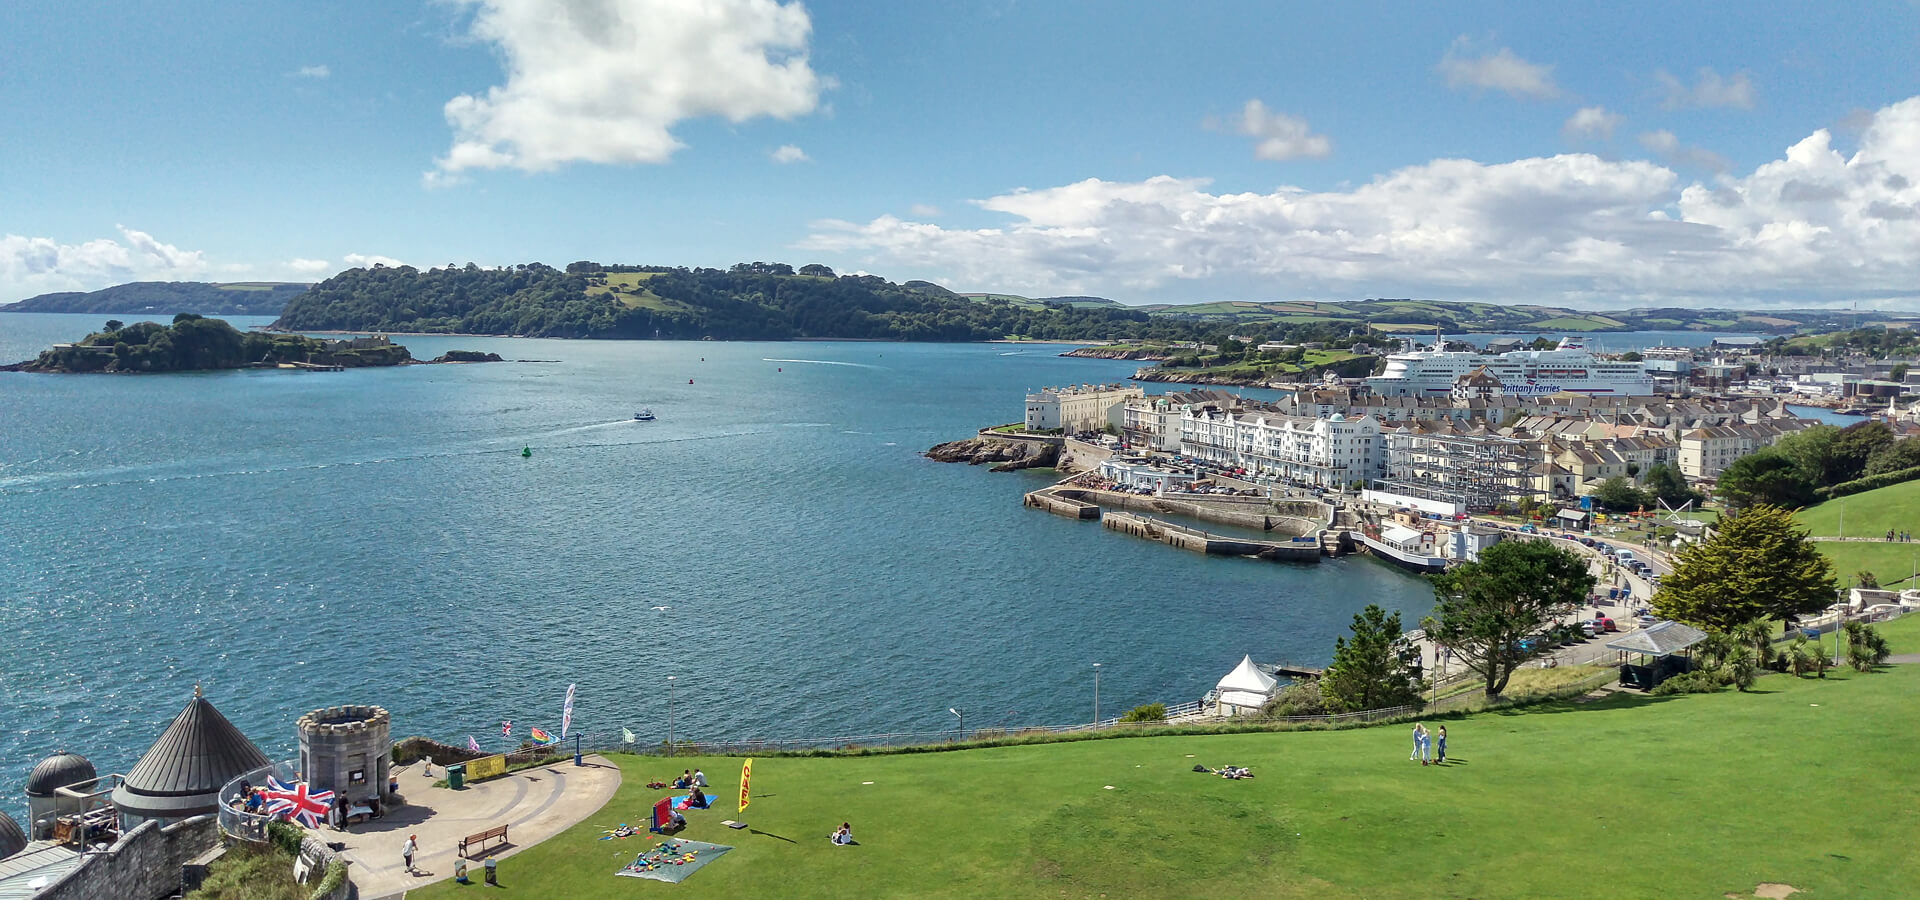 Plymouth-Hoe-Waterfront-uk-2015.jpg